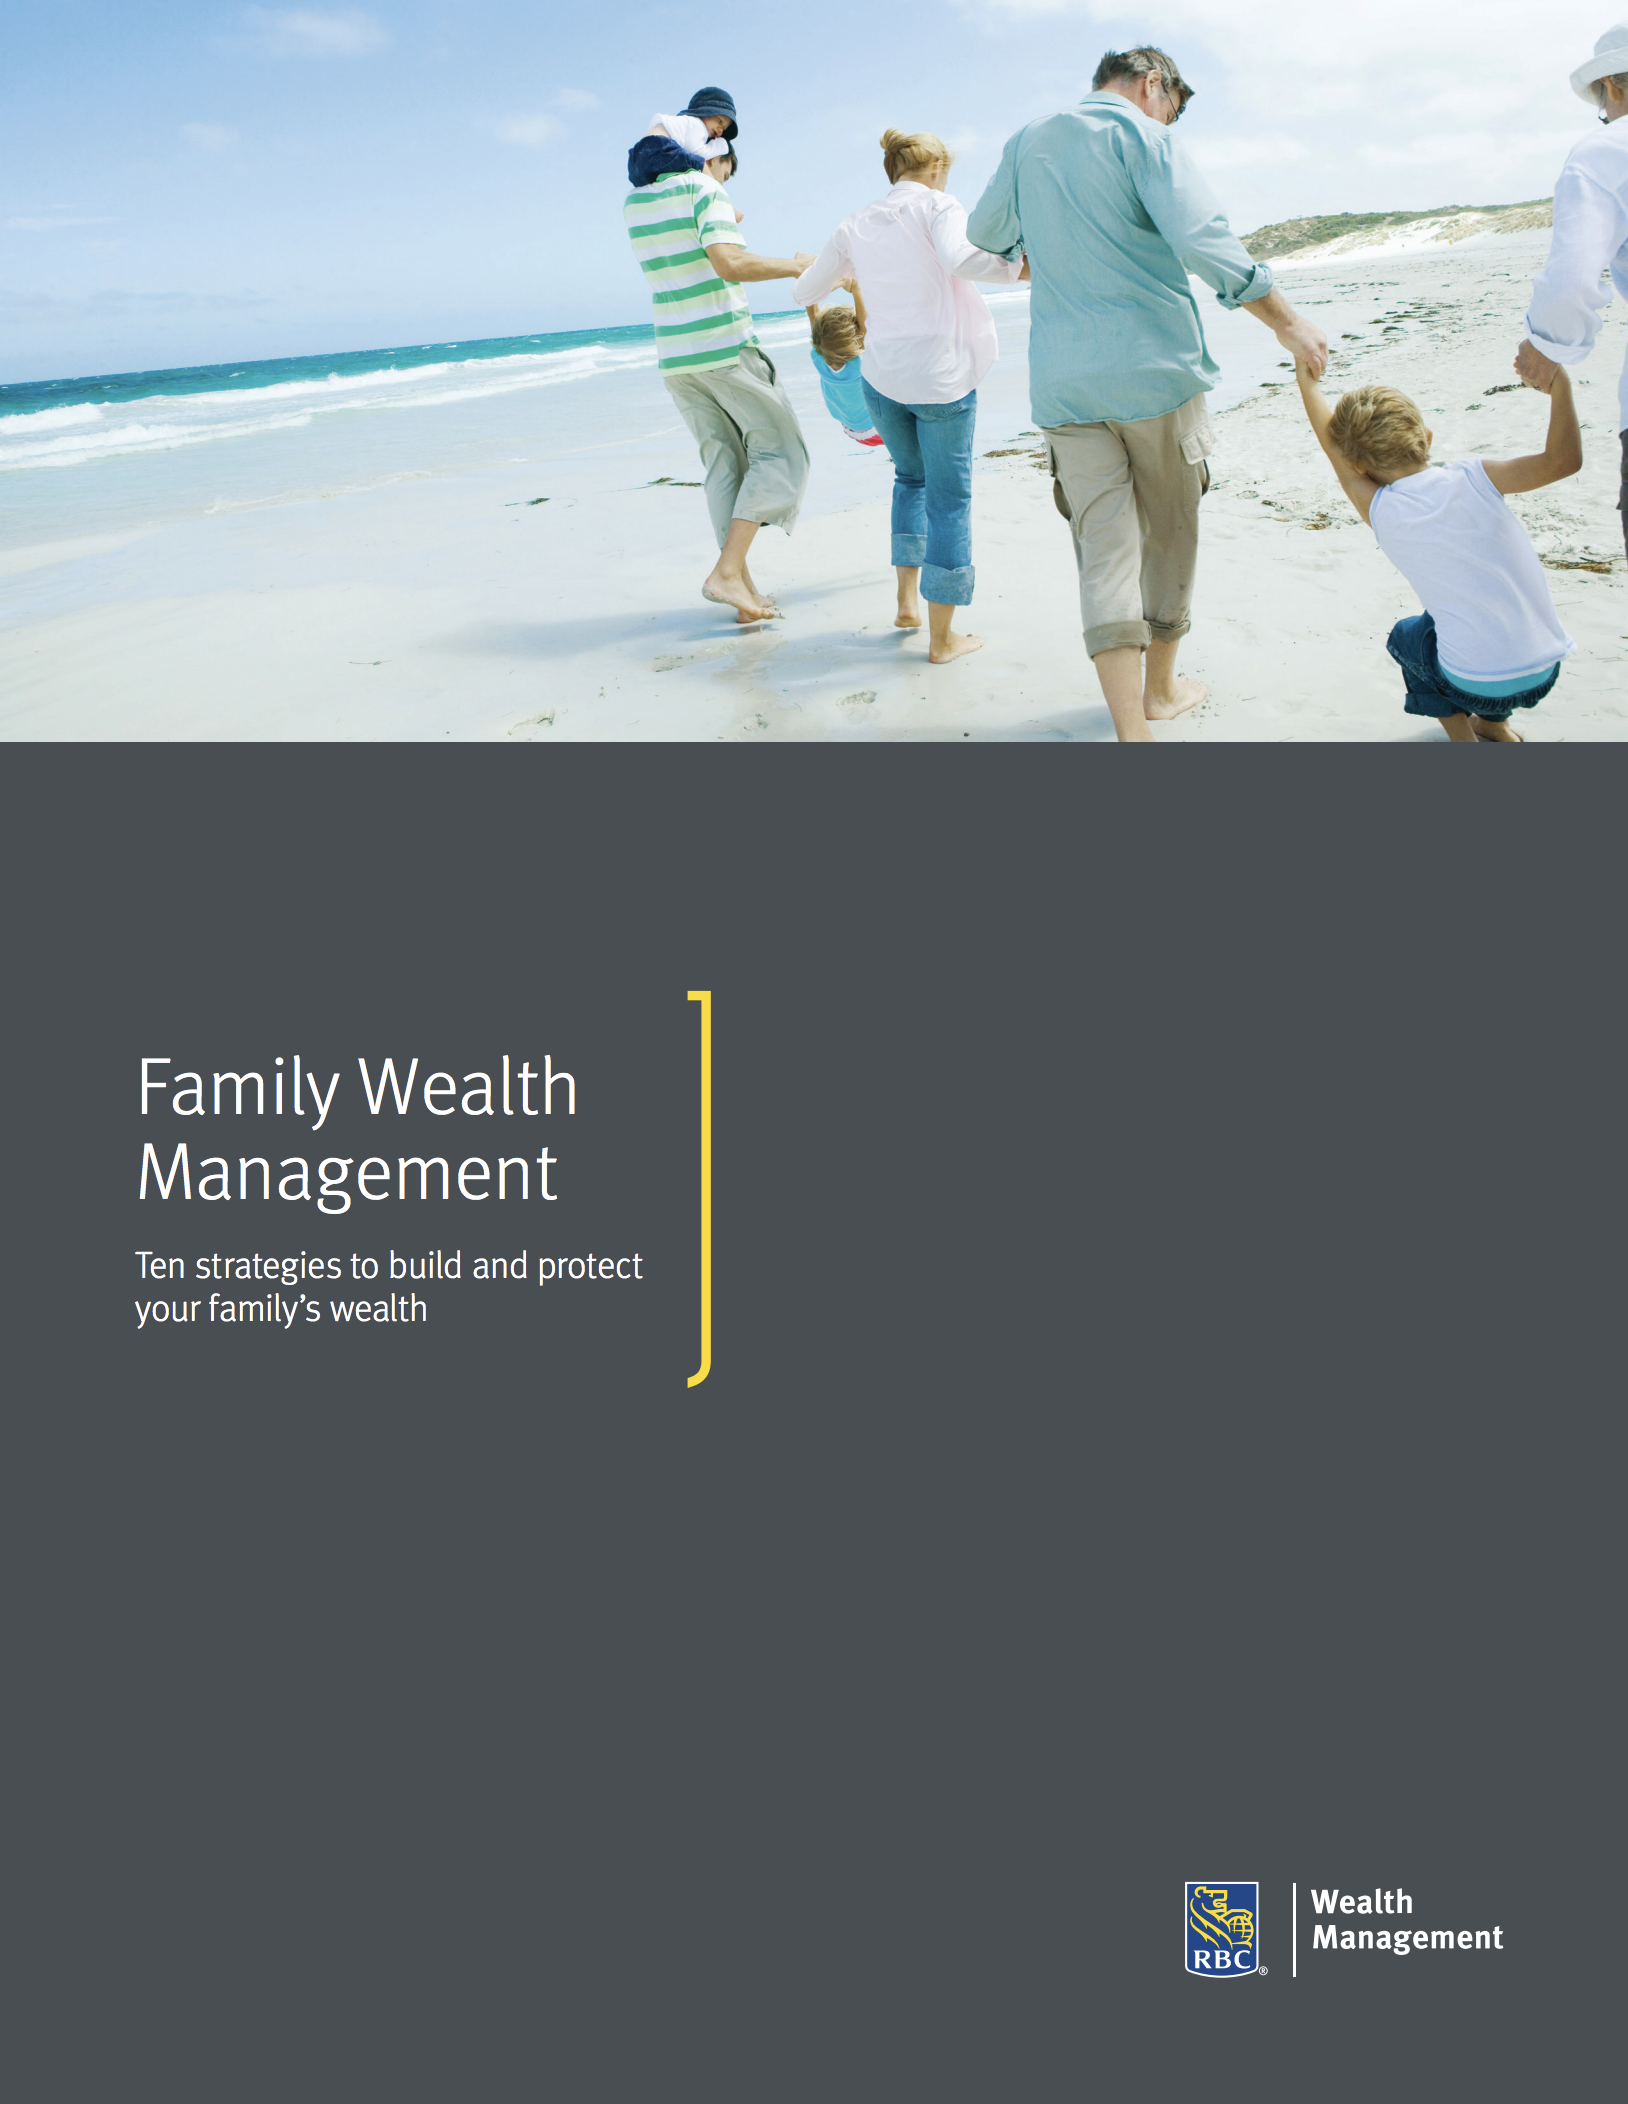 Family Wealth Management guide